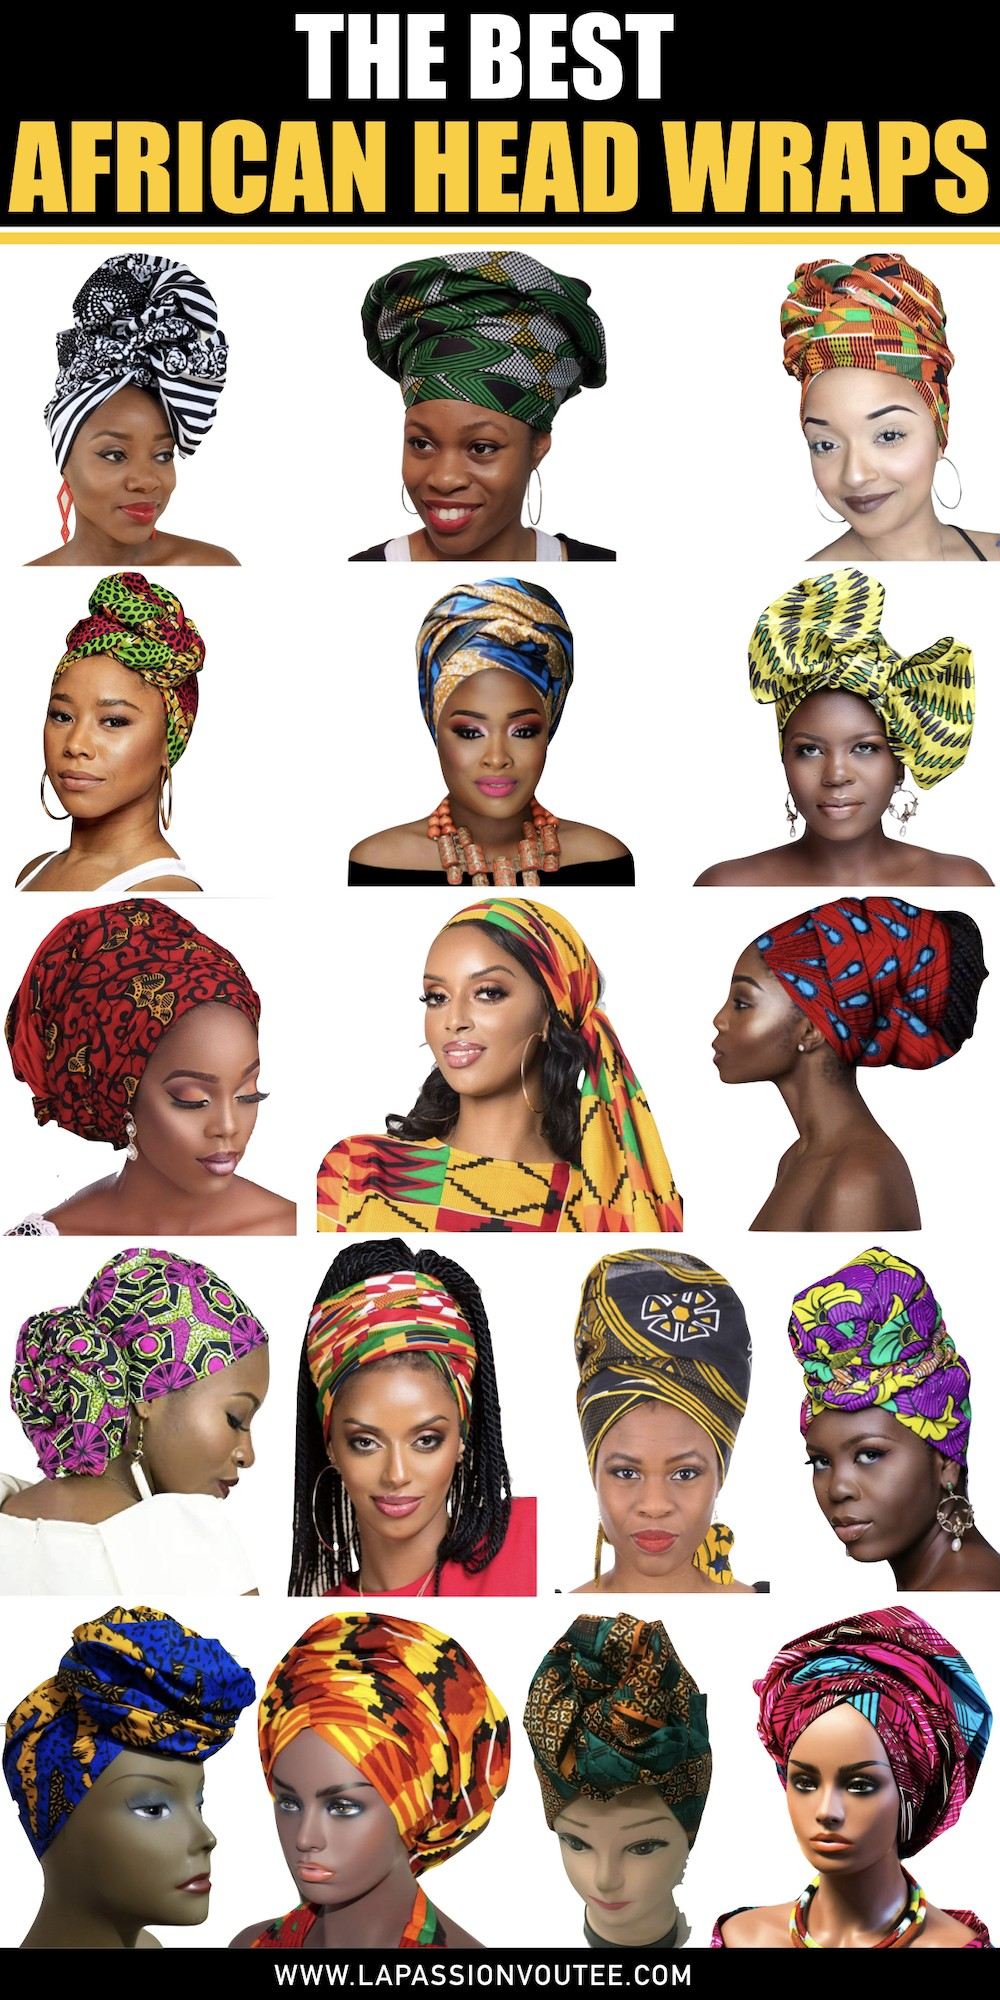 17 Best African Head Wraps In 2020 & Where to Get Ankara Scarves.